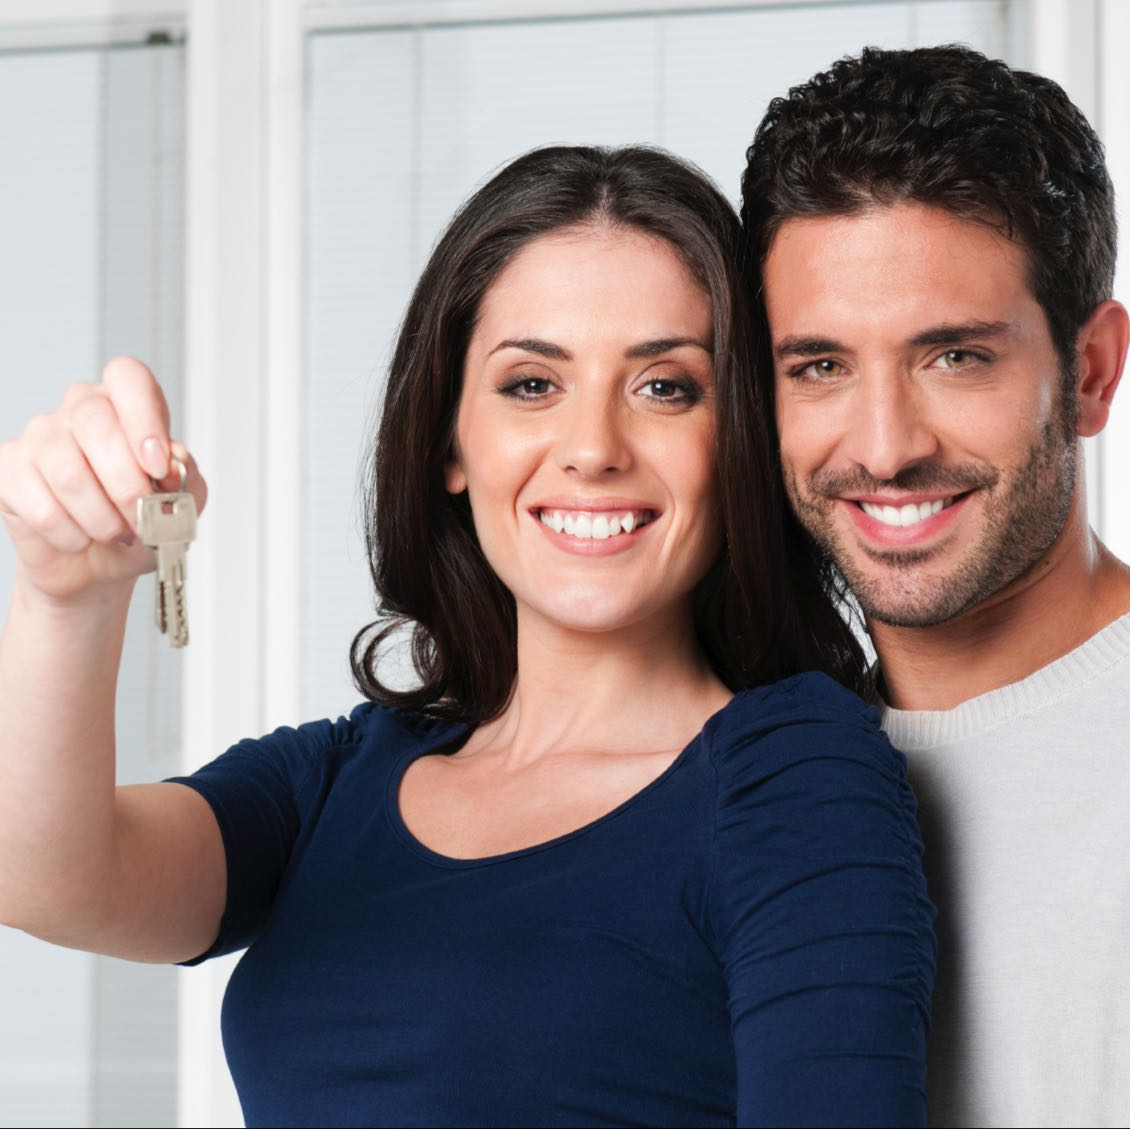 Couple holding keys to new home - residential real estate law at Kelly Santini LLP